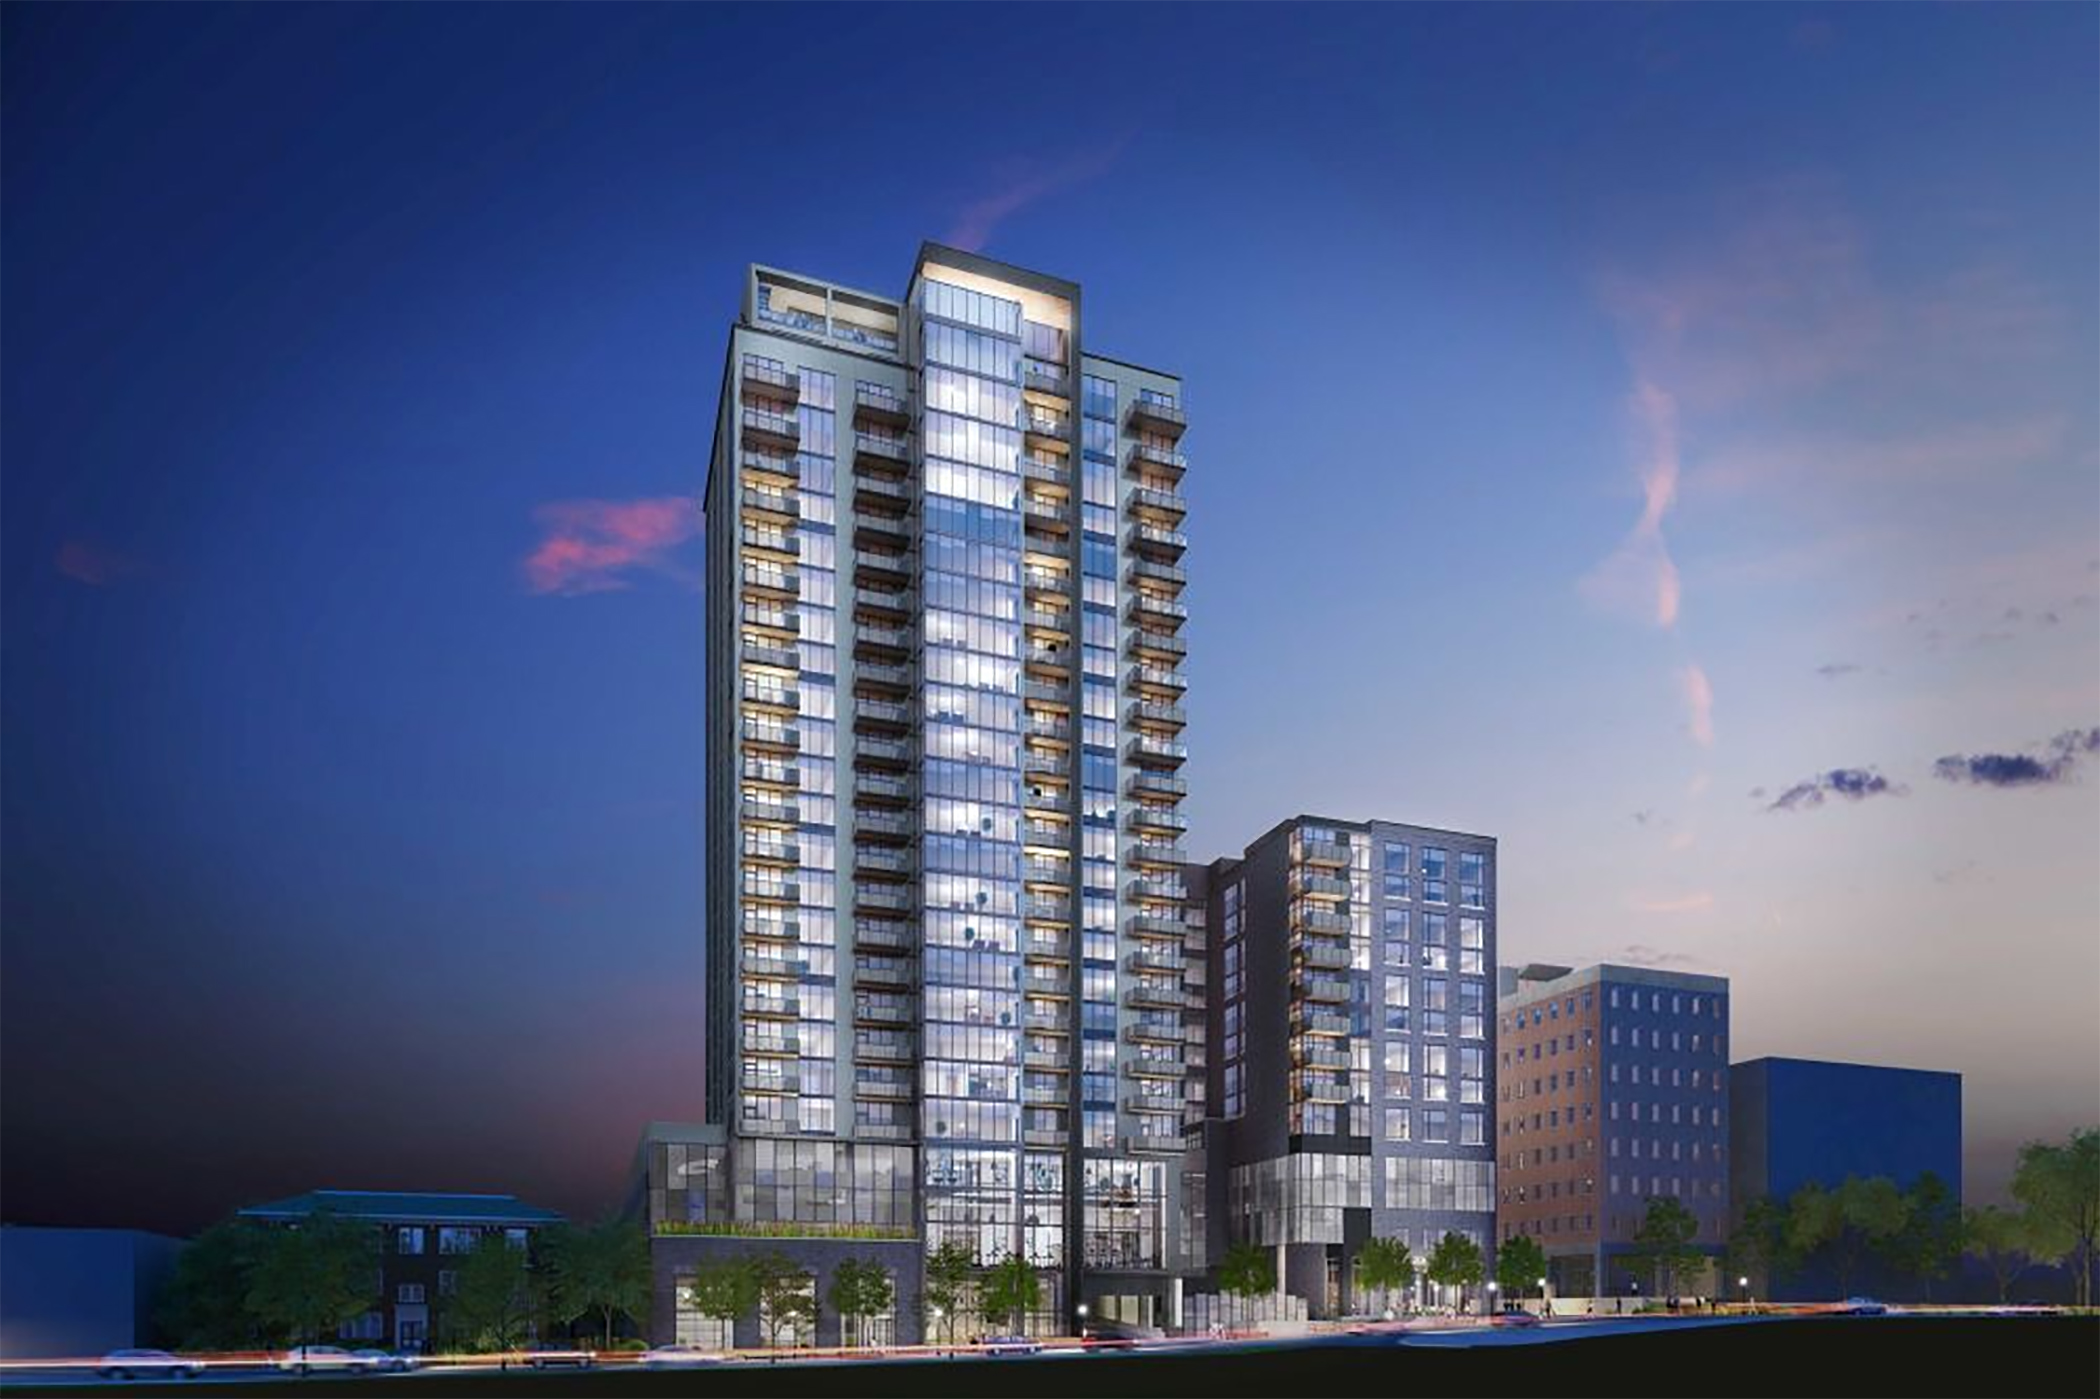 A rendering of Greystar's Ascent Midtown apartments in Atlanta. A similar project is planned for Nashville. (CoStar)